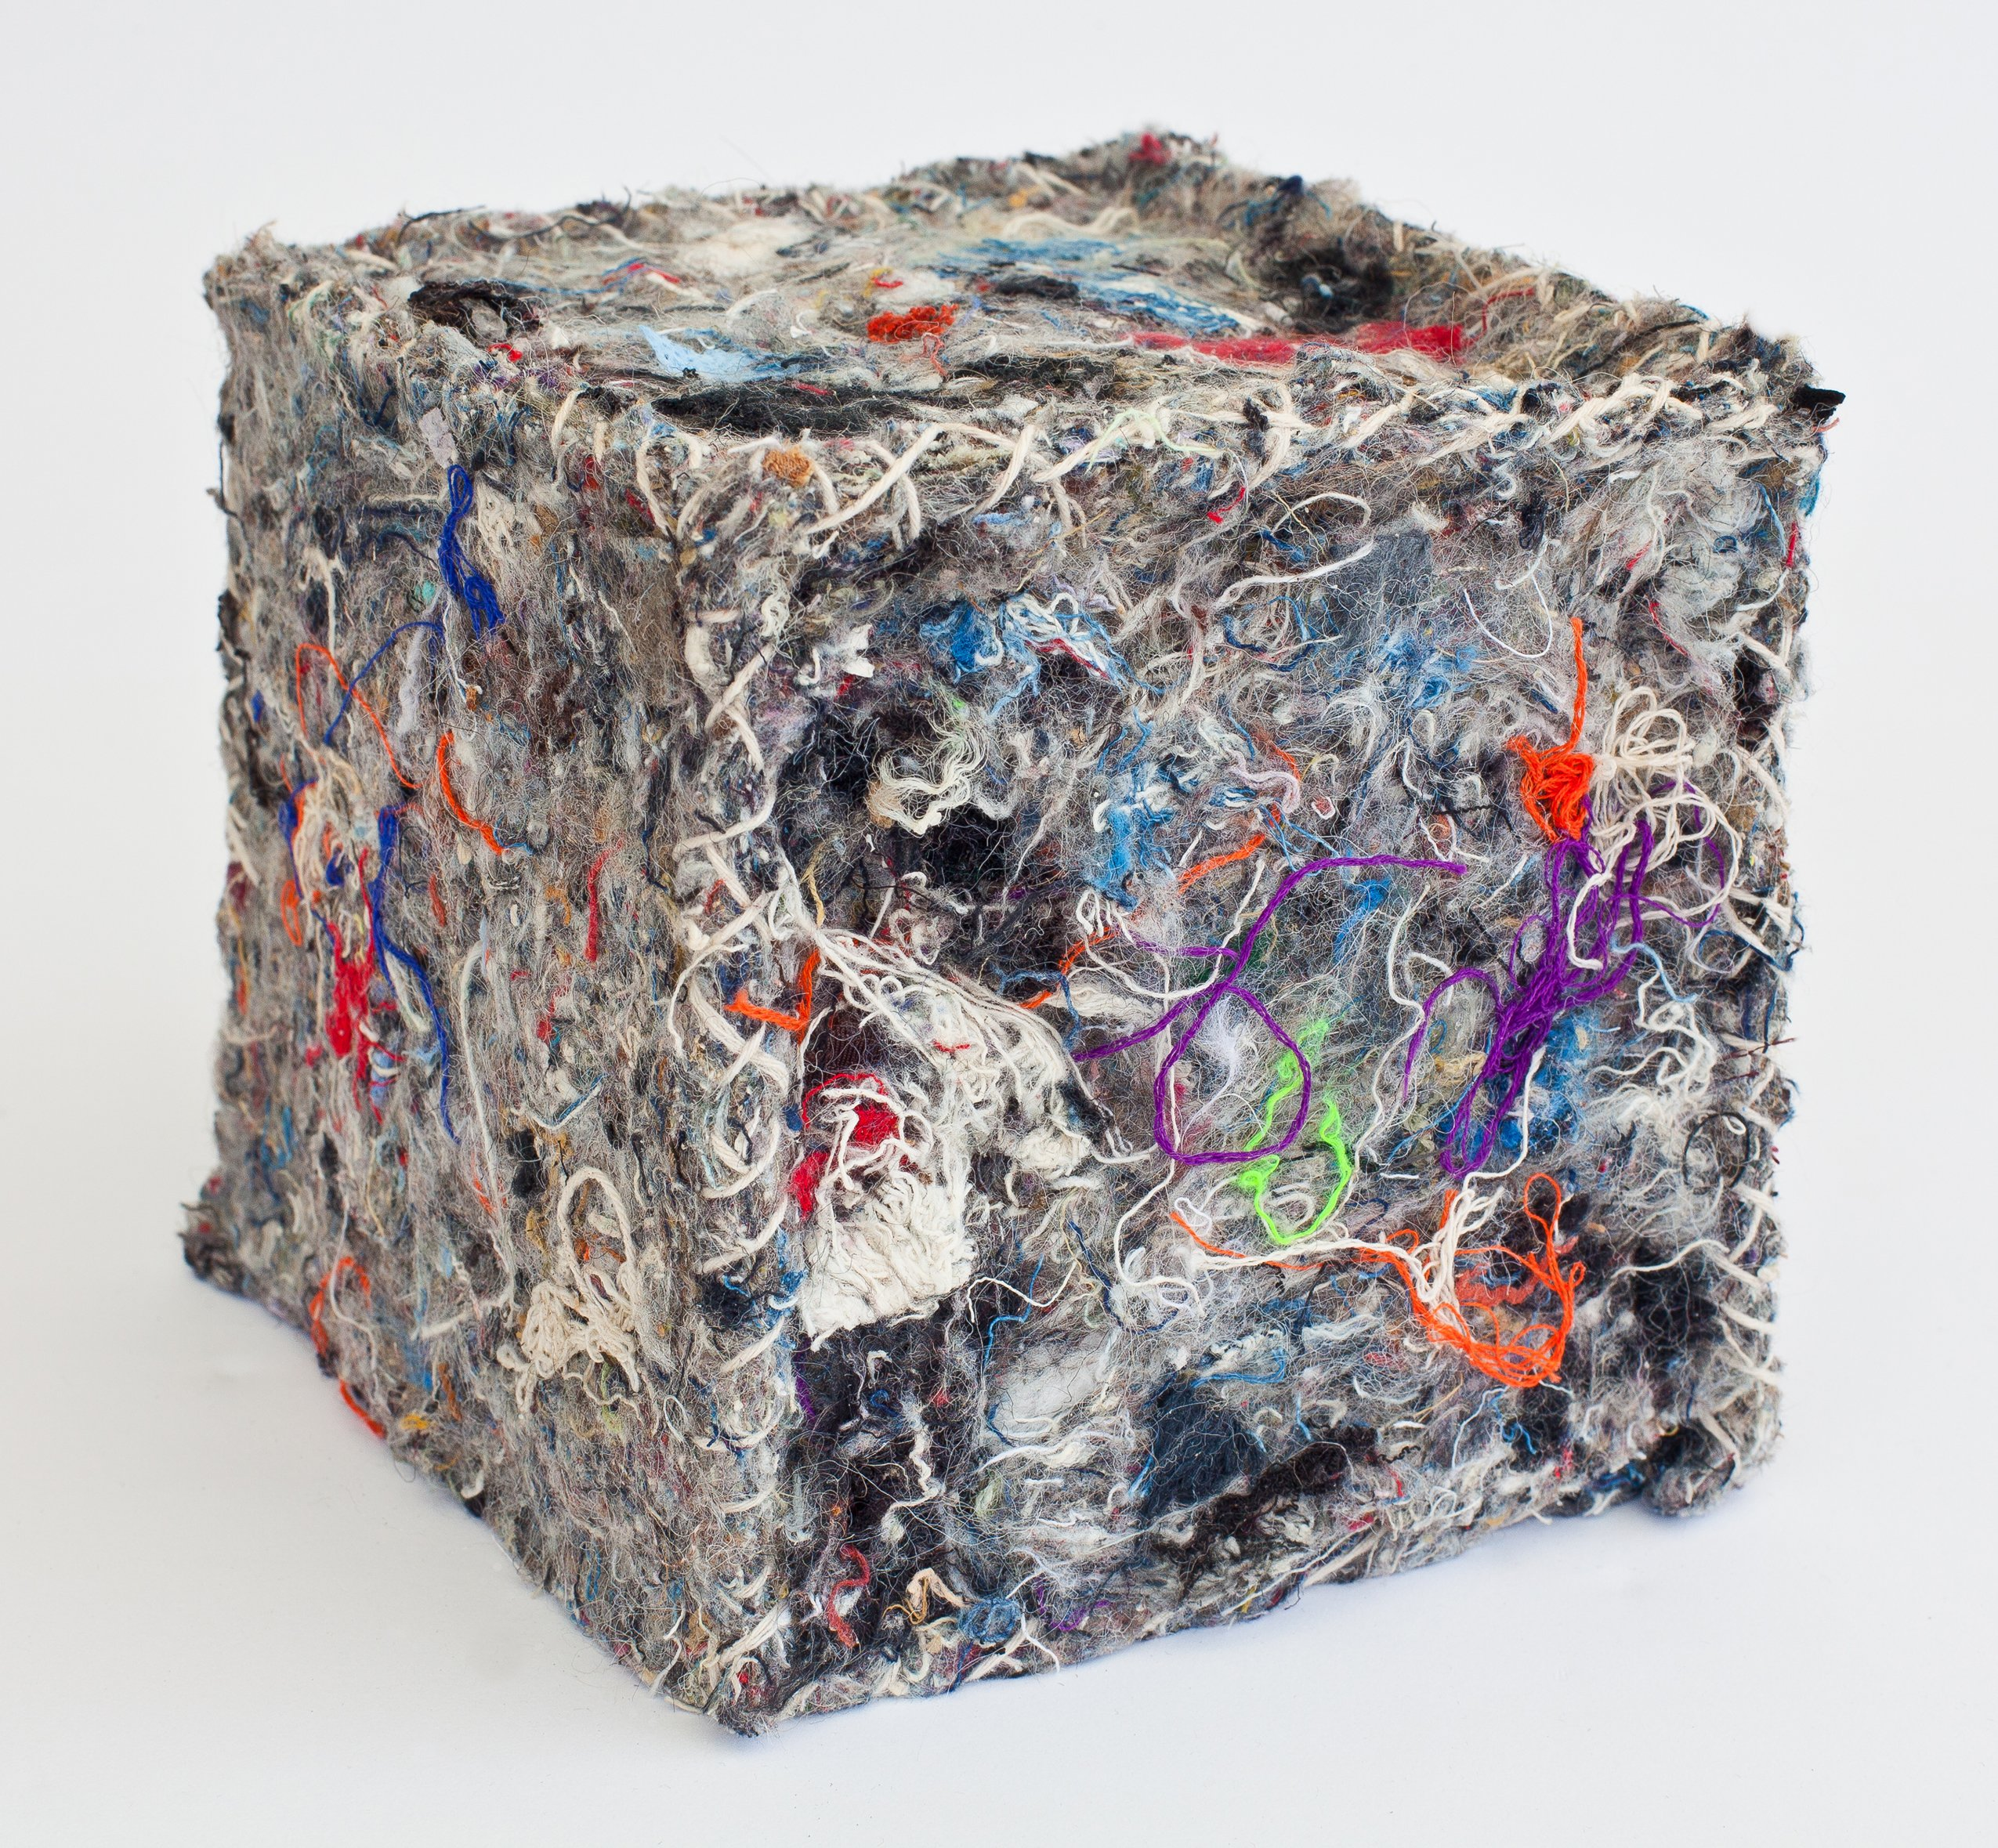 """Sheath"" by Carol Wisker, 6"" x 6"" x 6"" Recycled textile and fiber, wood box, 2010 (Photo credit: Howard A. Brunner), Mud Season Review"